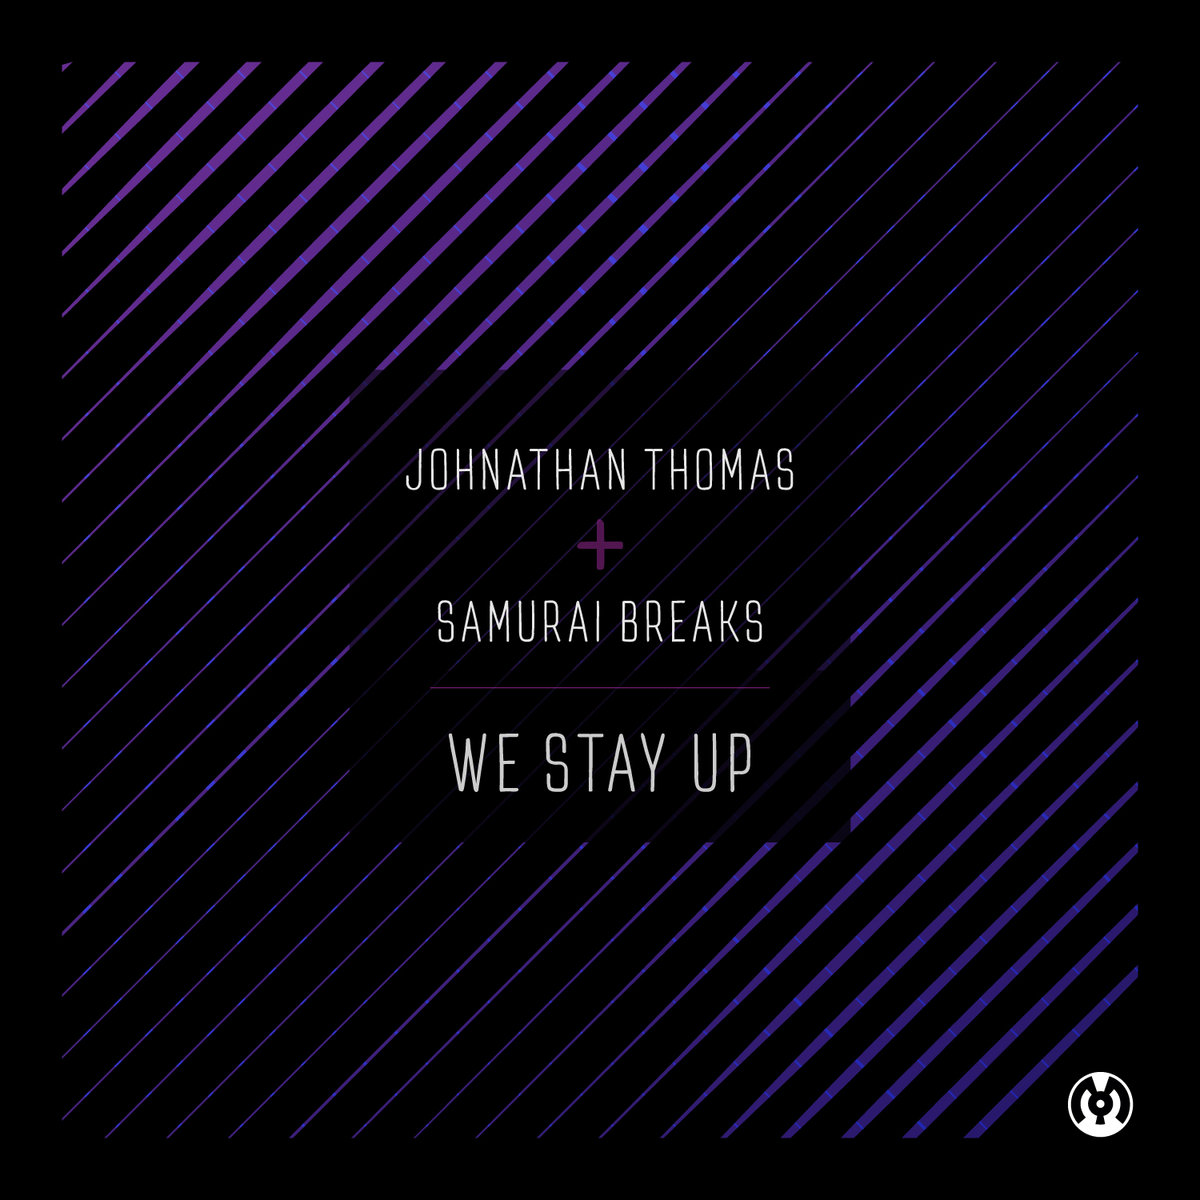 Johnathan Thomas & Samurai Breaks - We Stay Up